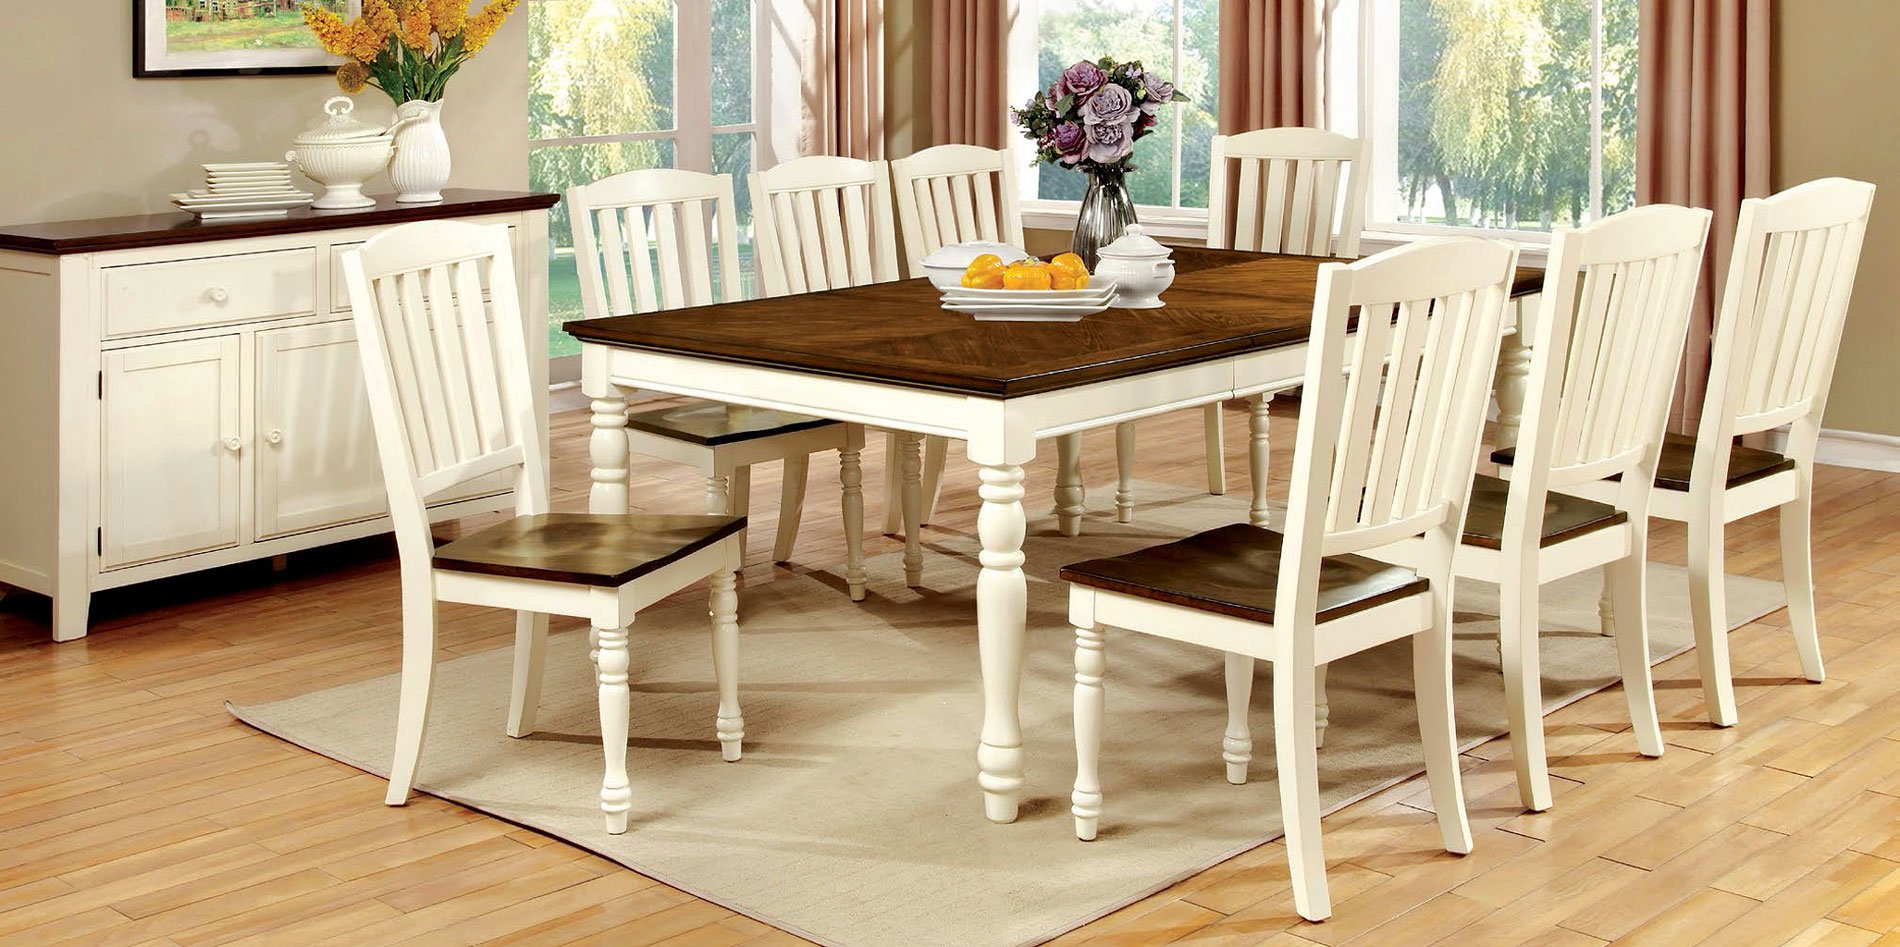 harrisburg dining room set furniture of america furniture cart. Black Bedroom Furniture Sets. Home Design Ideas